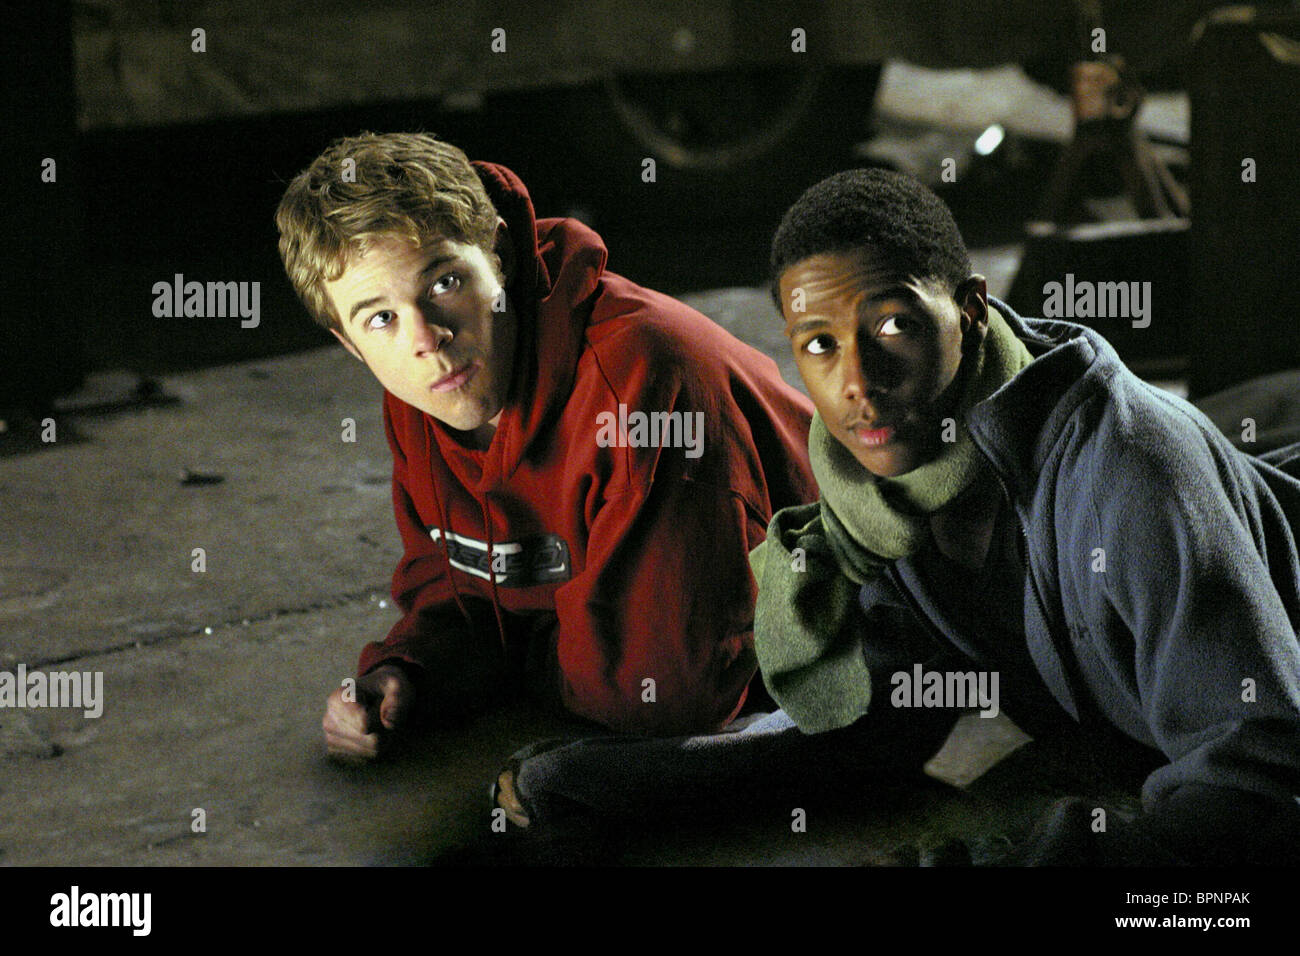 SHAWN ASHMORE & NICK CANNON THE UNDERCLASSMAN; THE UNDERCLASS MAN (2005) - Stock Image